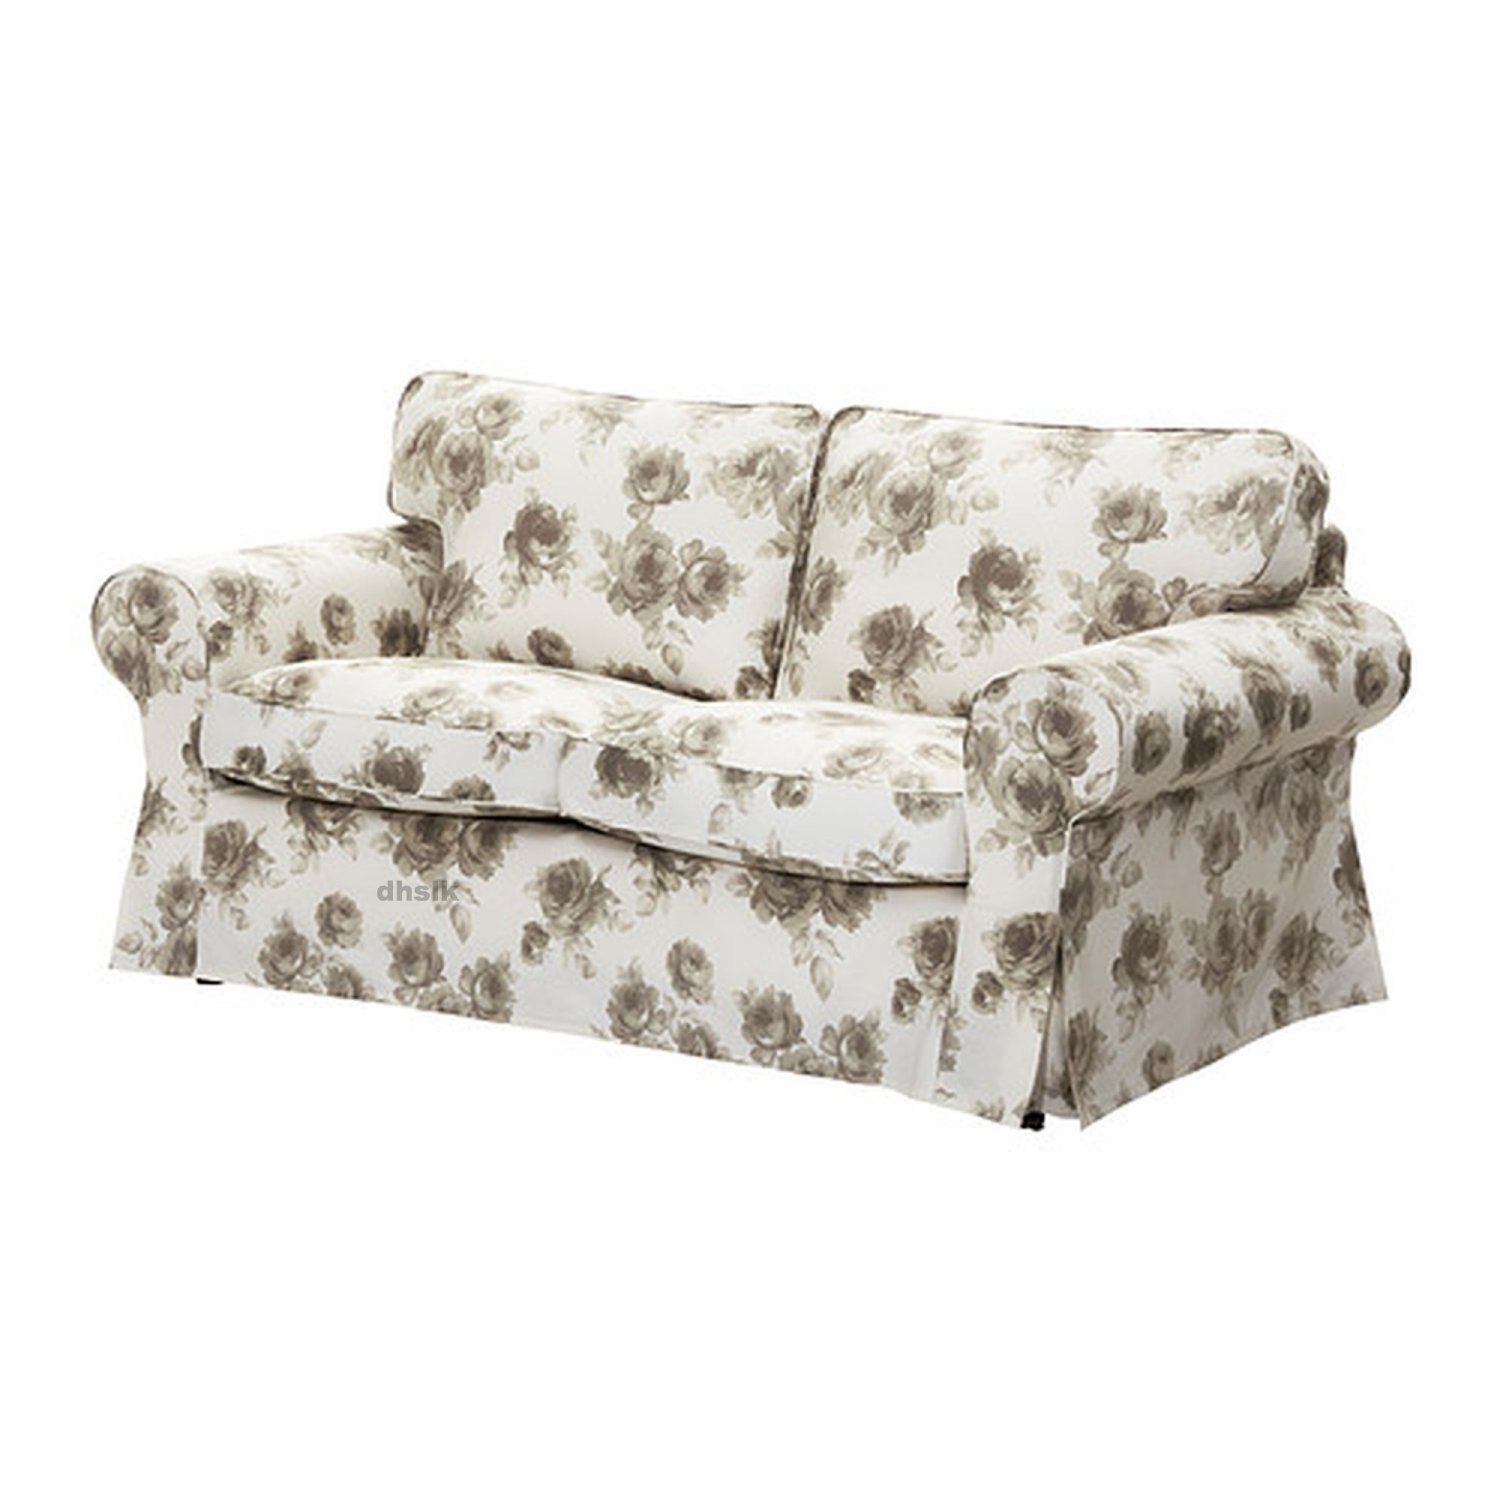 IKEA EKTORP 2 Seat Sofa SLIPCOVER Loveseat Cover NORLIDA  : 52ae26183cbc454622b from rock-paper-scissors.ecrater.com size 1500 x 1500 jpeg 152kB